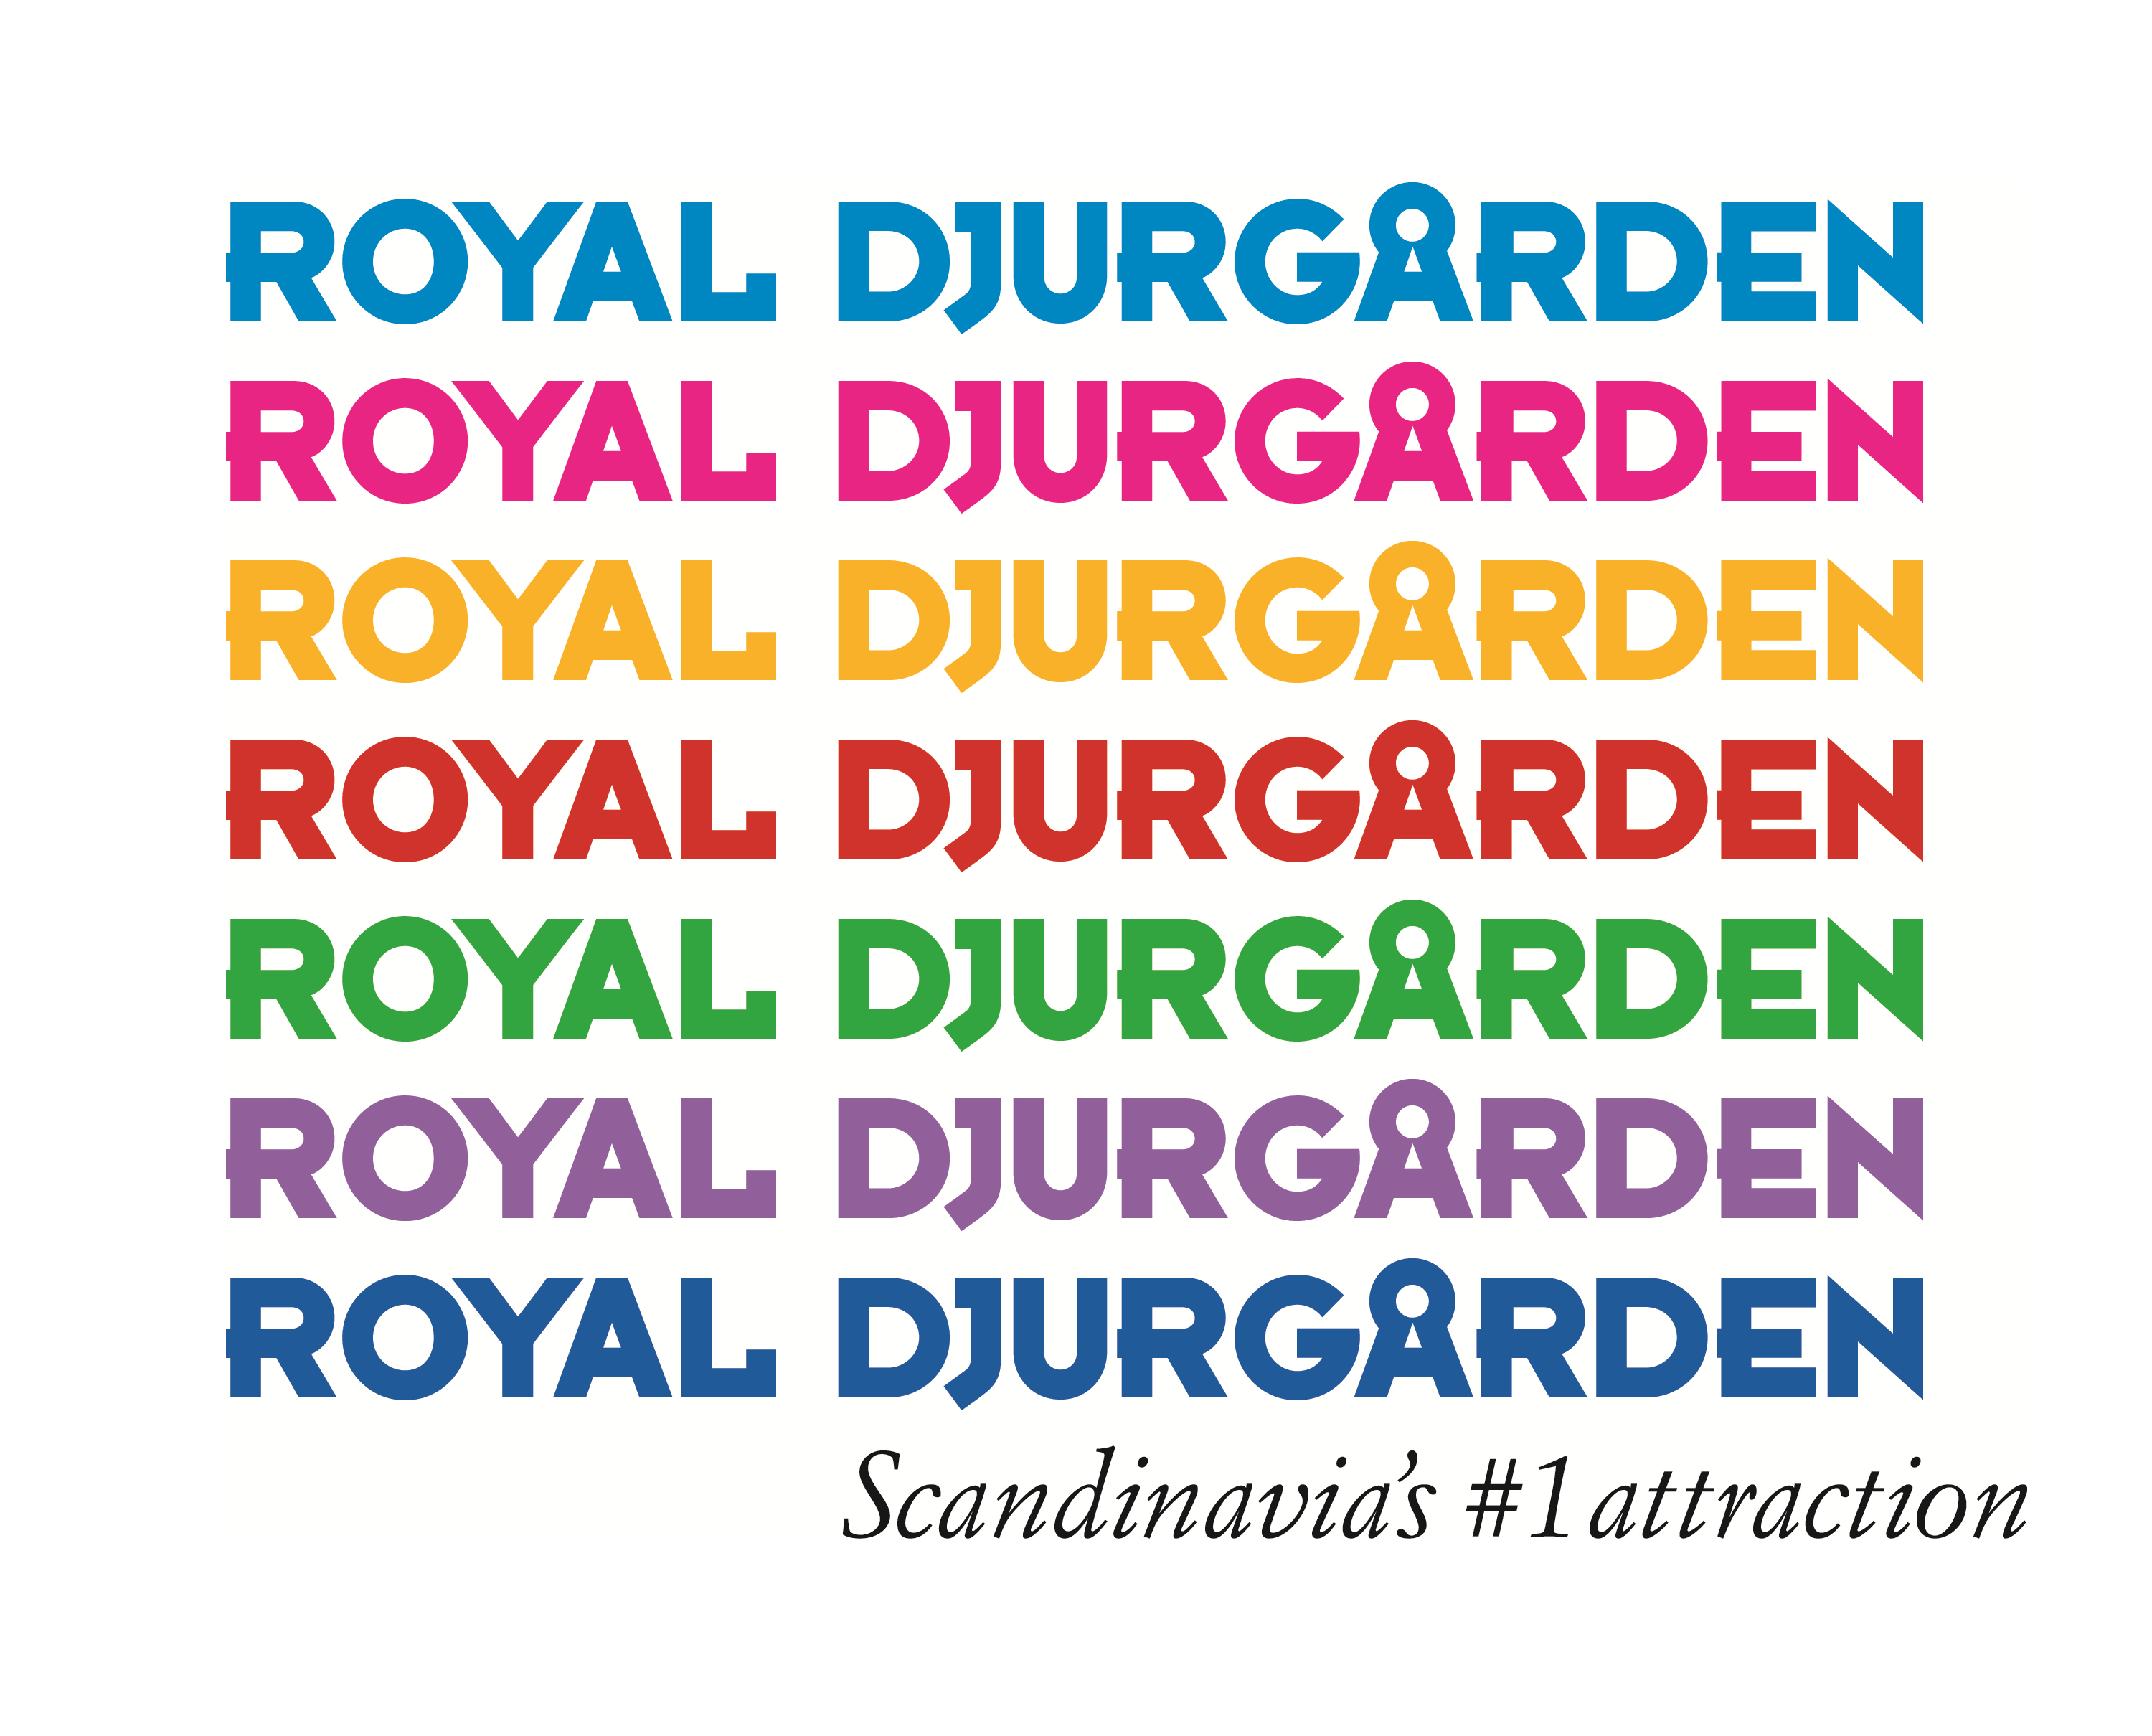 Royal Djurgården custom font logotype created by the design team at UP THERE, EVERYWHERE